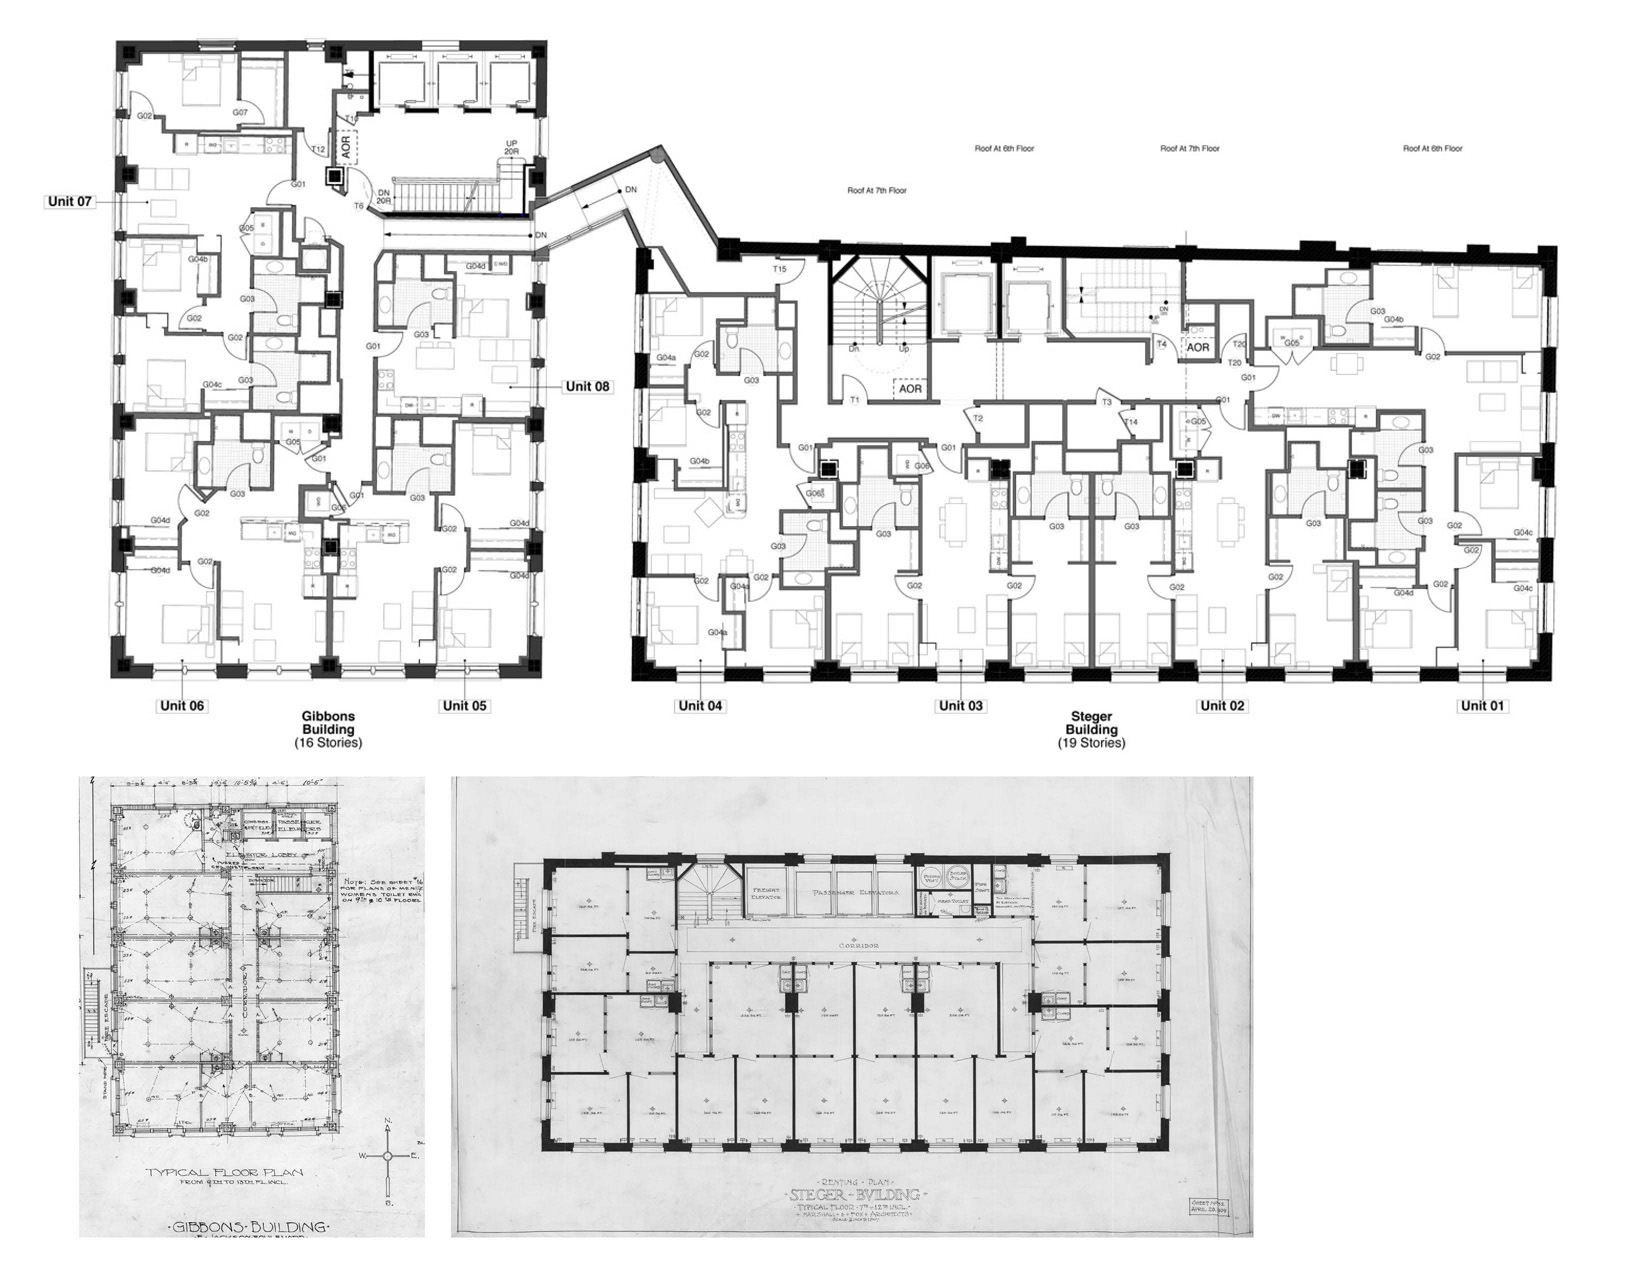 10_Infinite_Chg_Typ_Flr_Plan_Current_and_Existing The Mathes House Plan on the house plane, the house model, home plan, simple ranch house plan, the house design, the house people, garage plan, the house drawing, the house network, food plan, the house home, restaurant plan, the house map,